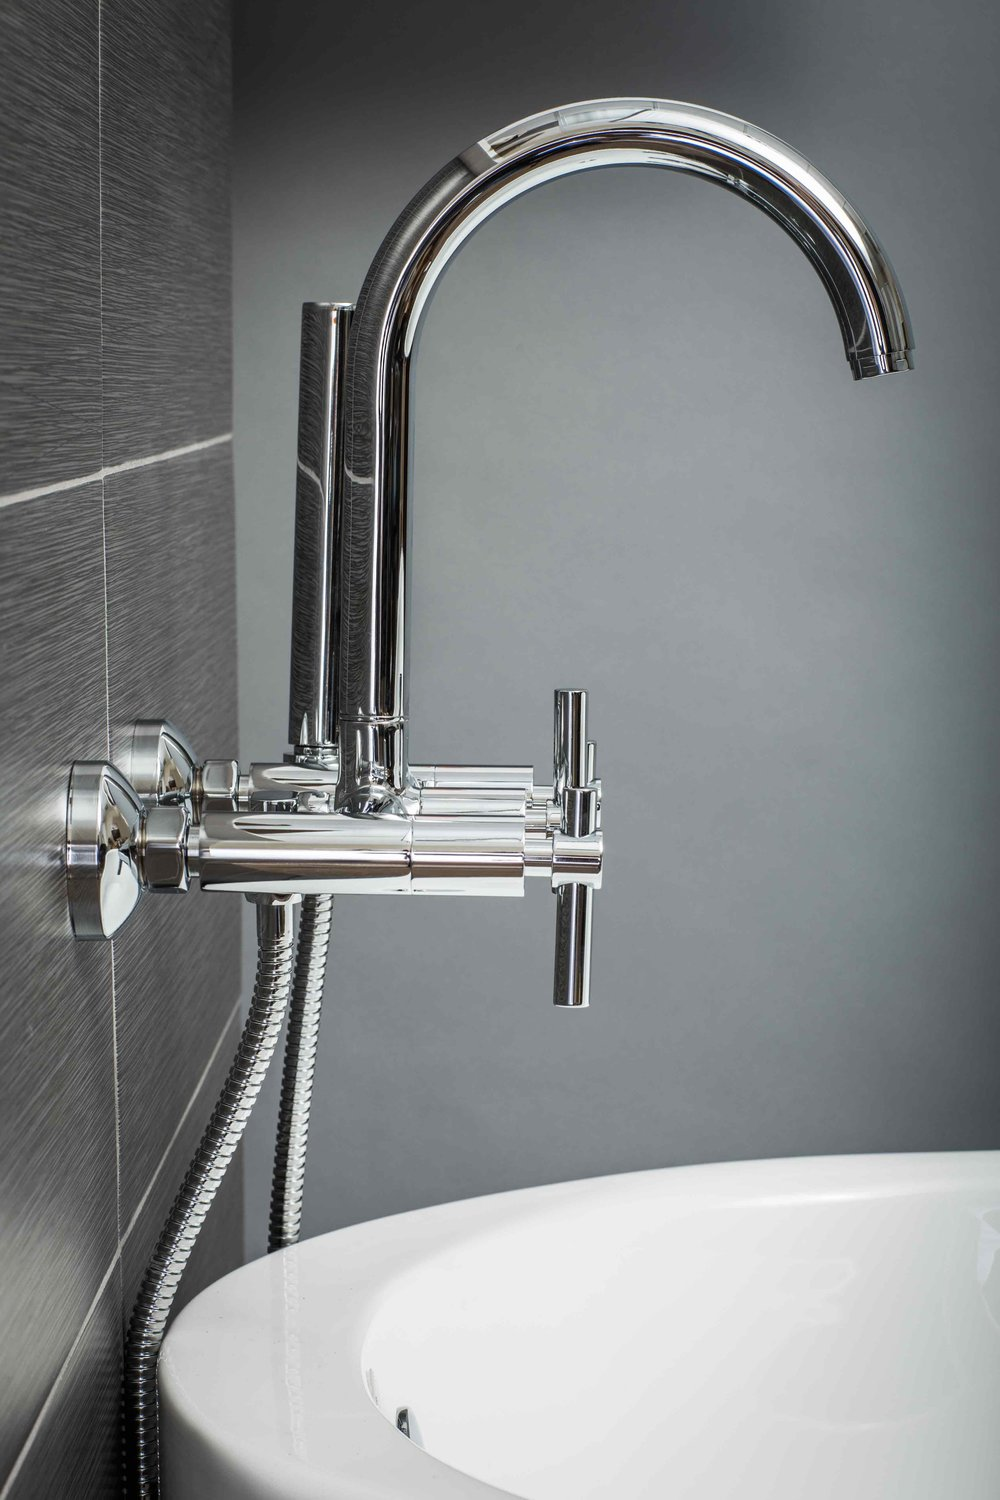 wall mount tub filler faucet and handshower in chrome with metal levers